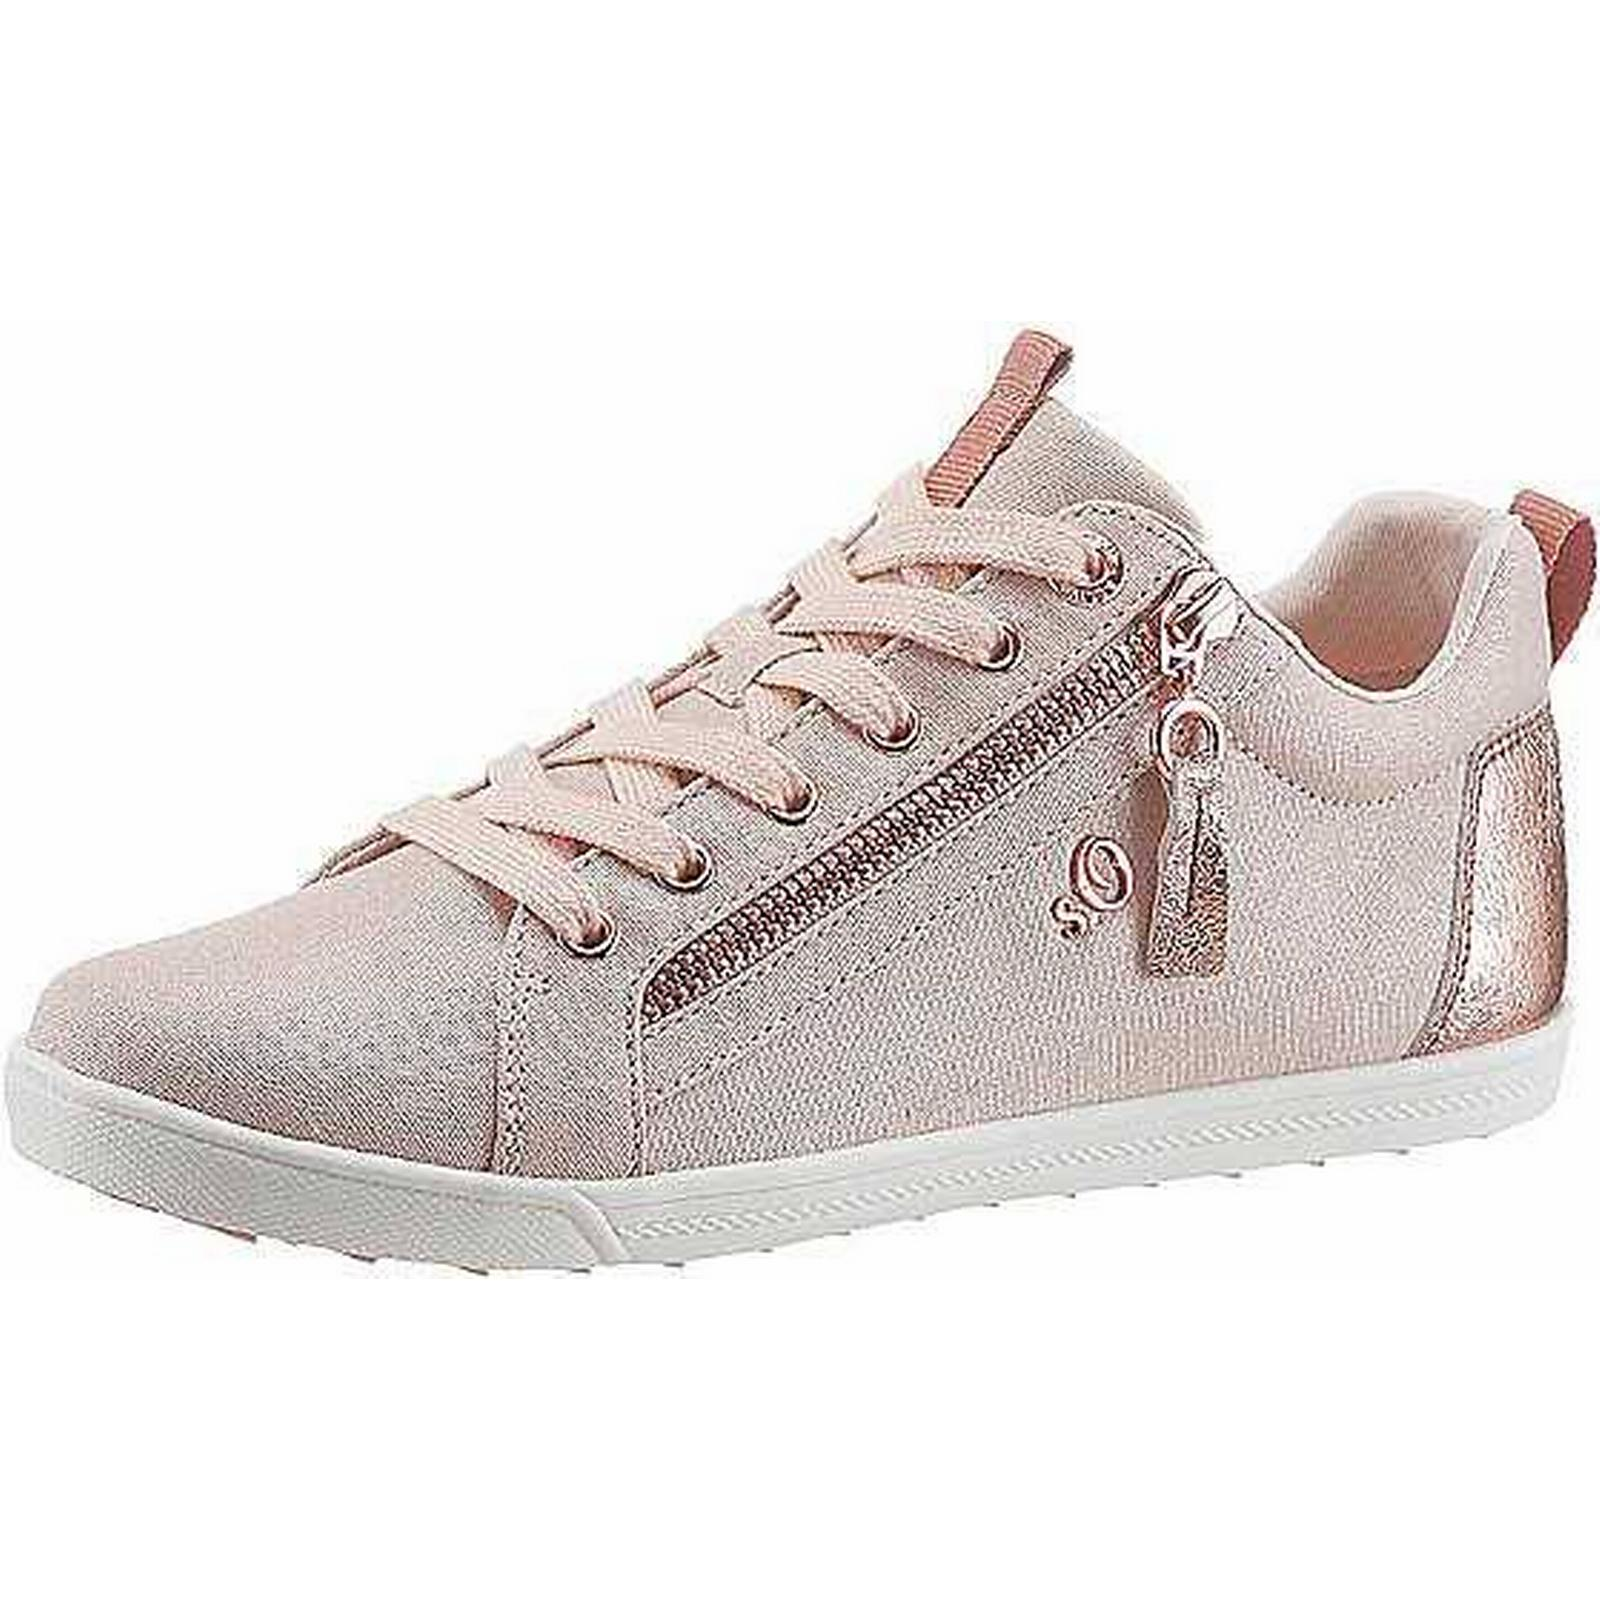 S.Oliver RED LABEL Gold Shopping Effect Trainers by s.Oliver-Mr/Ms-Online Shopping Gold 66a287